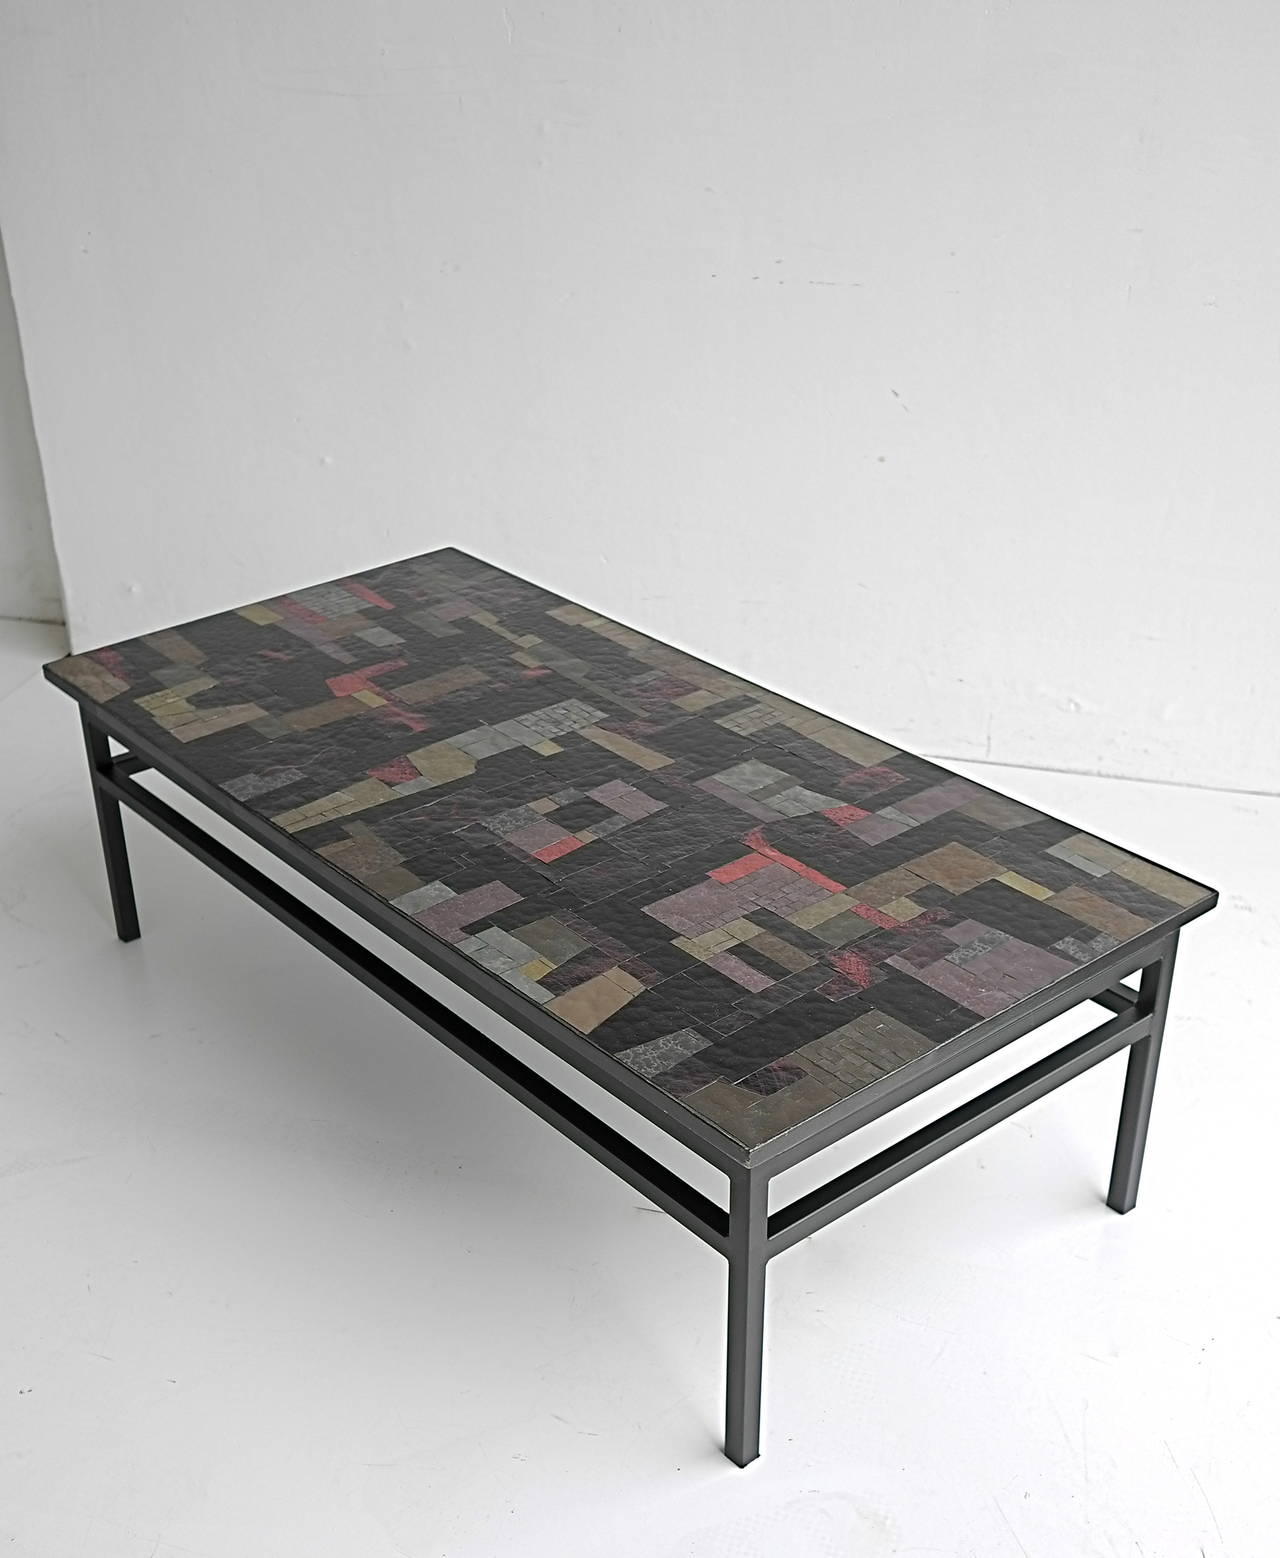 Mid 20th Century Pia Manu Multi Colored Glass Art Coffee Table For